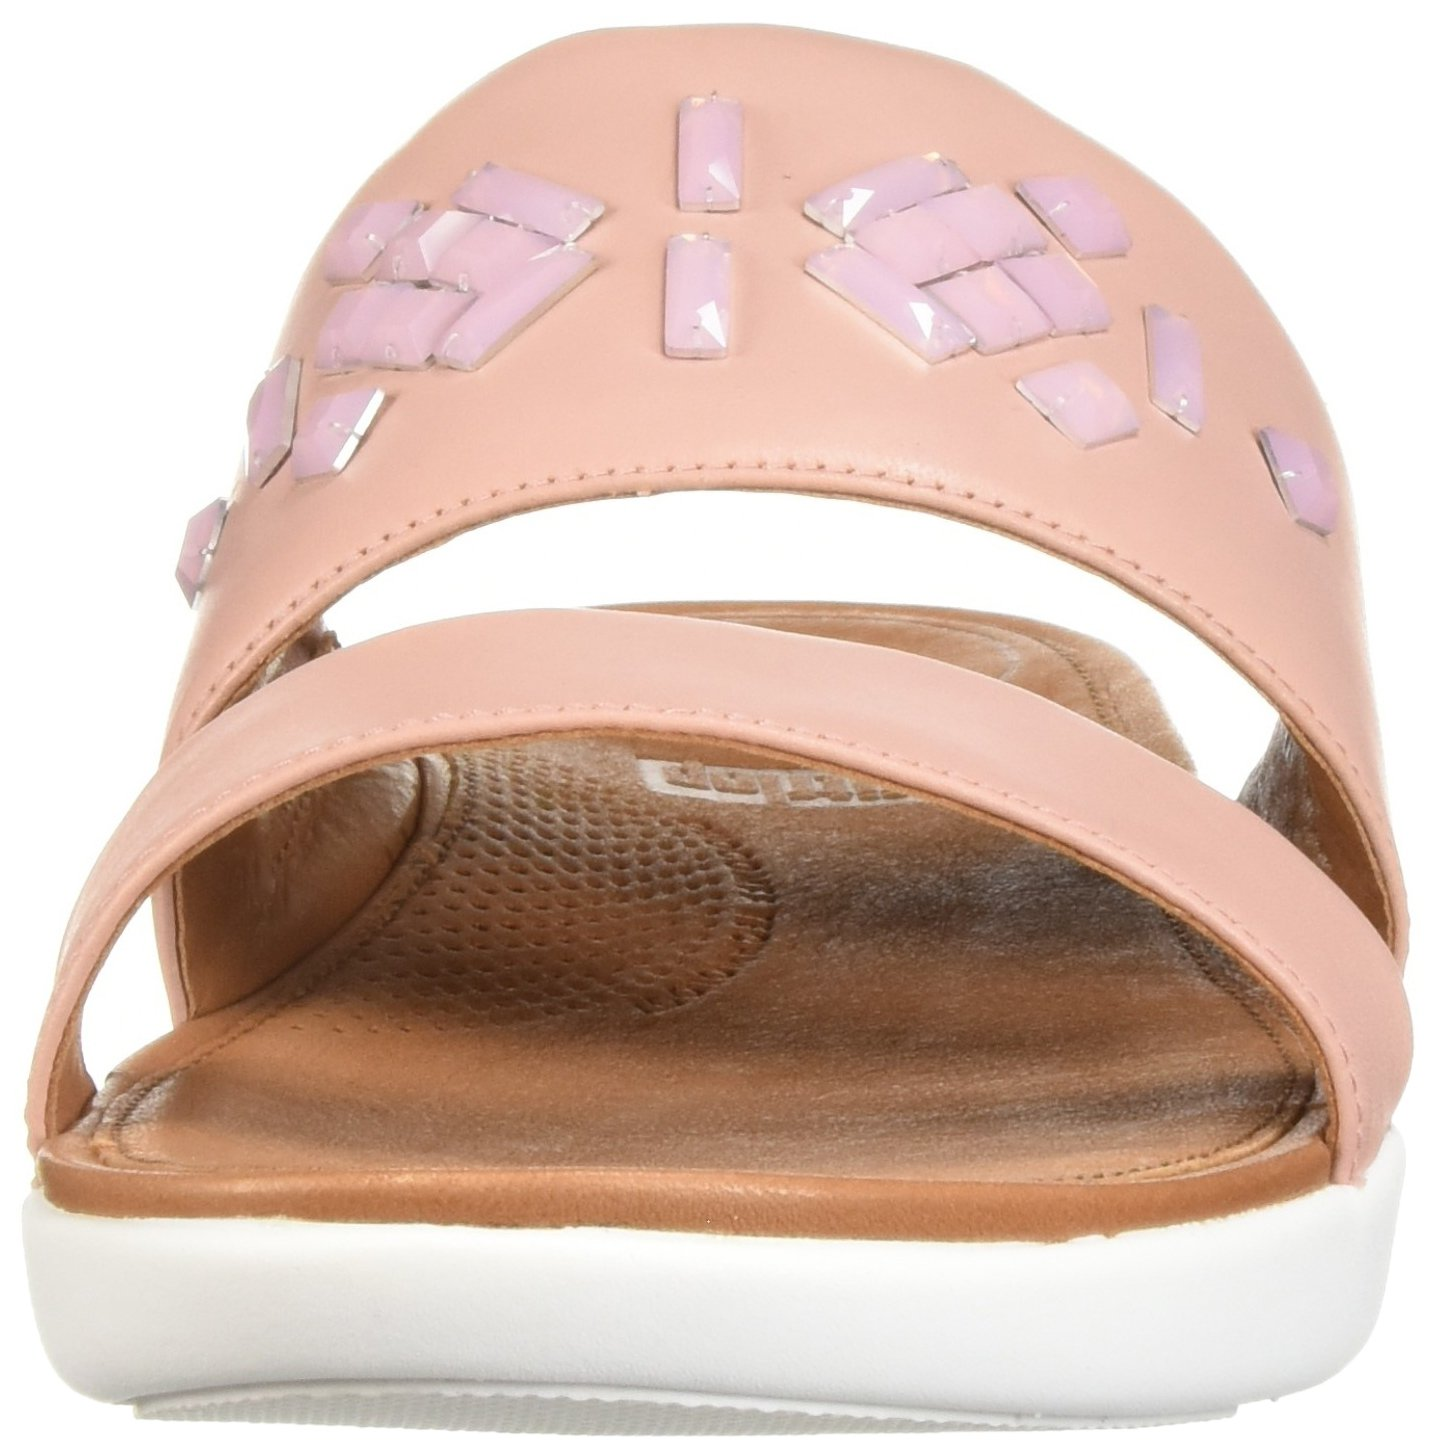 238fccc4cfc4 ... FitFlop Women s Delta Leather 5 Crystal Slide Sandal B0774ZZL24 5  Leather M US